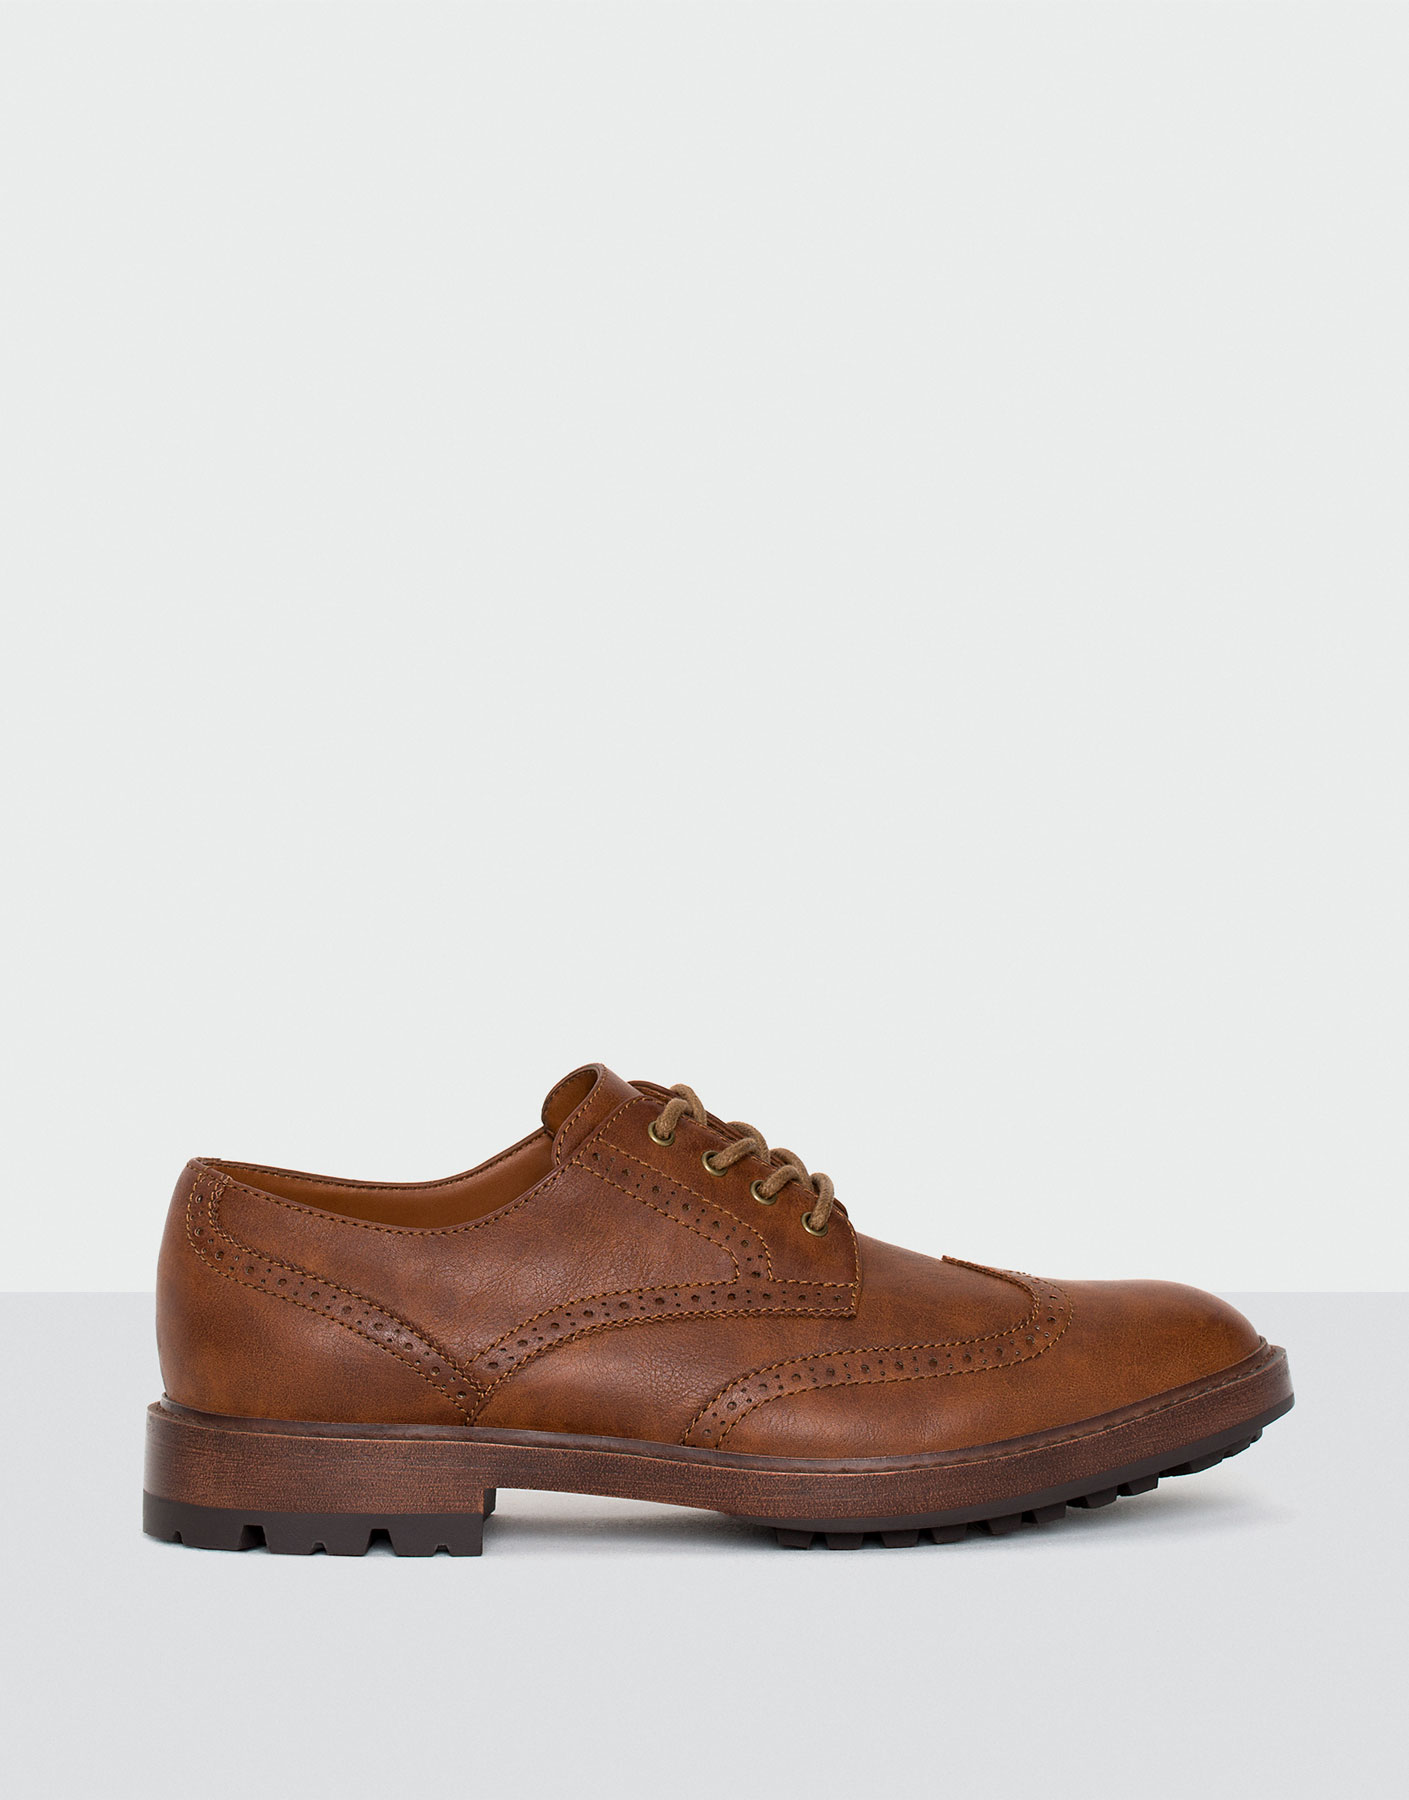 Brogue fashion shoes